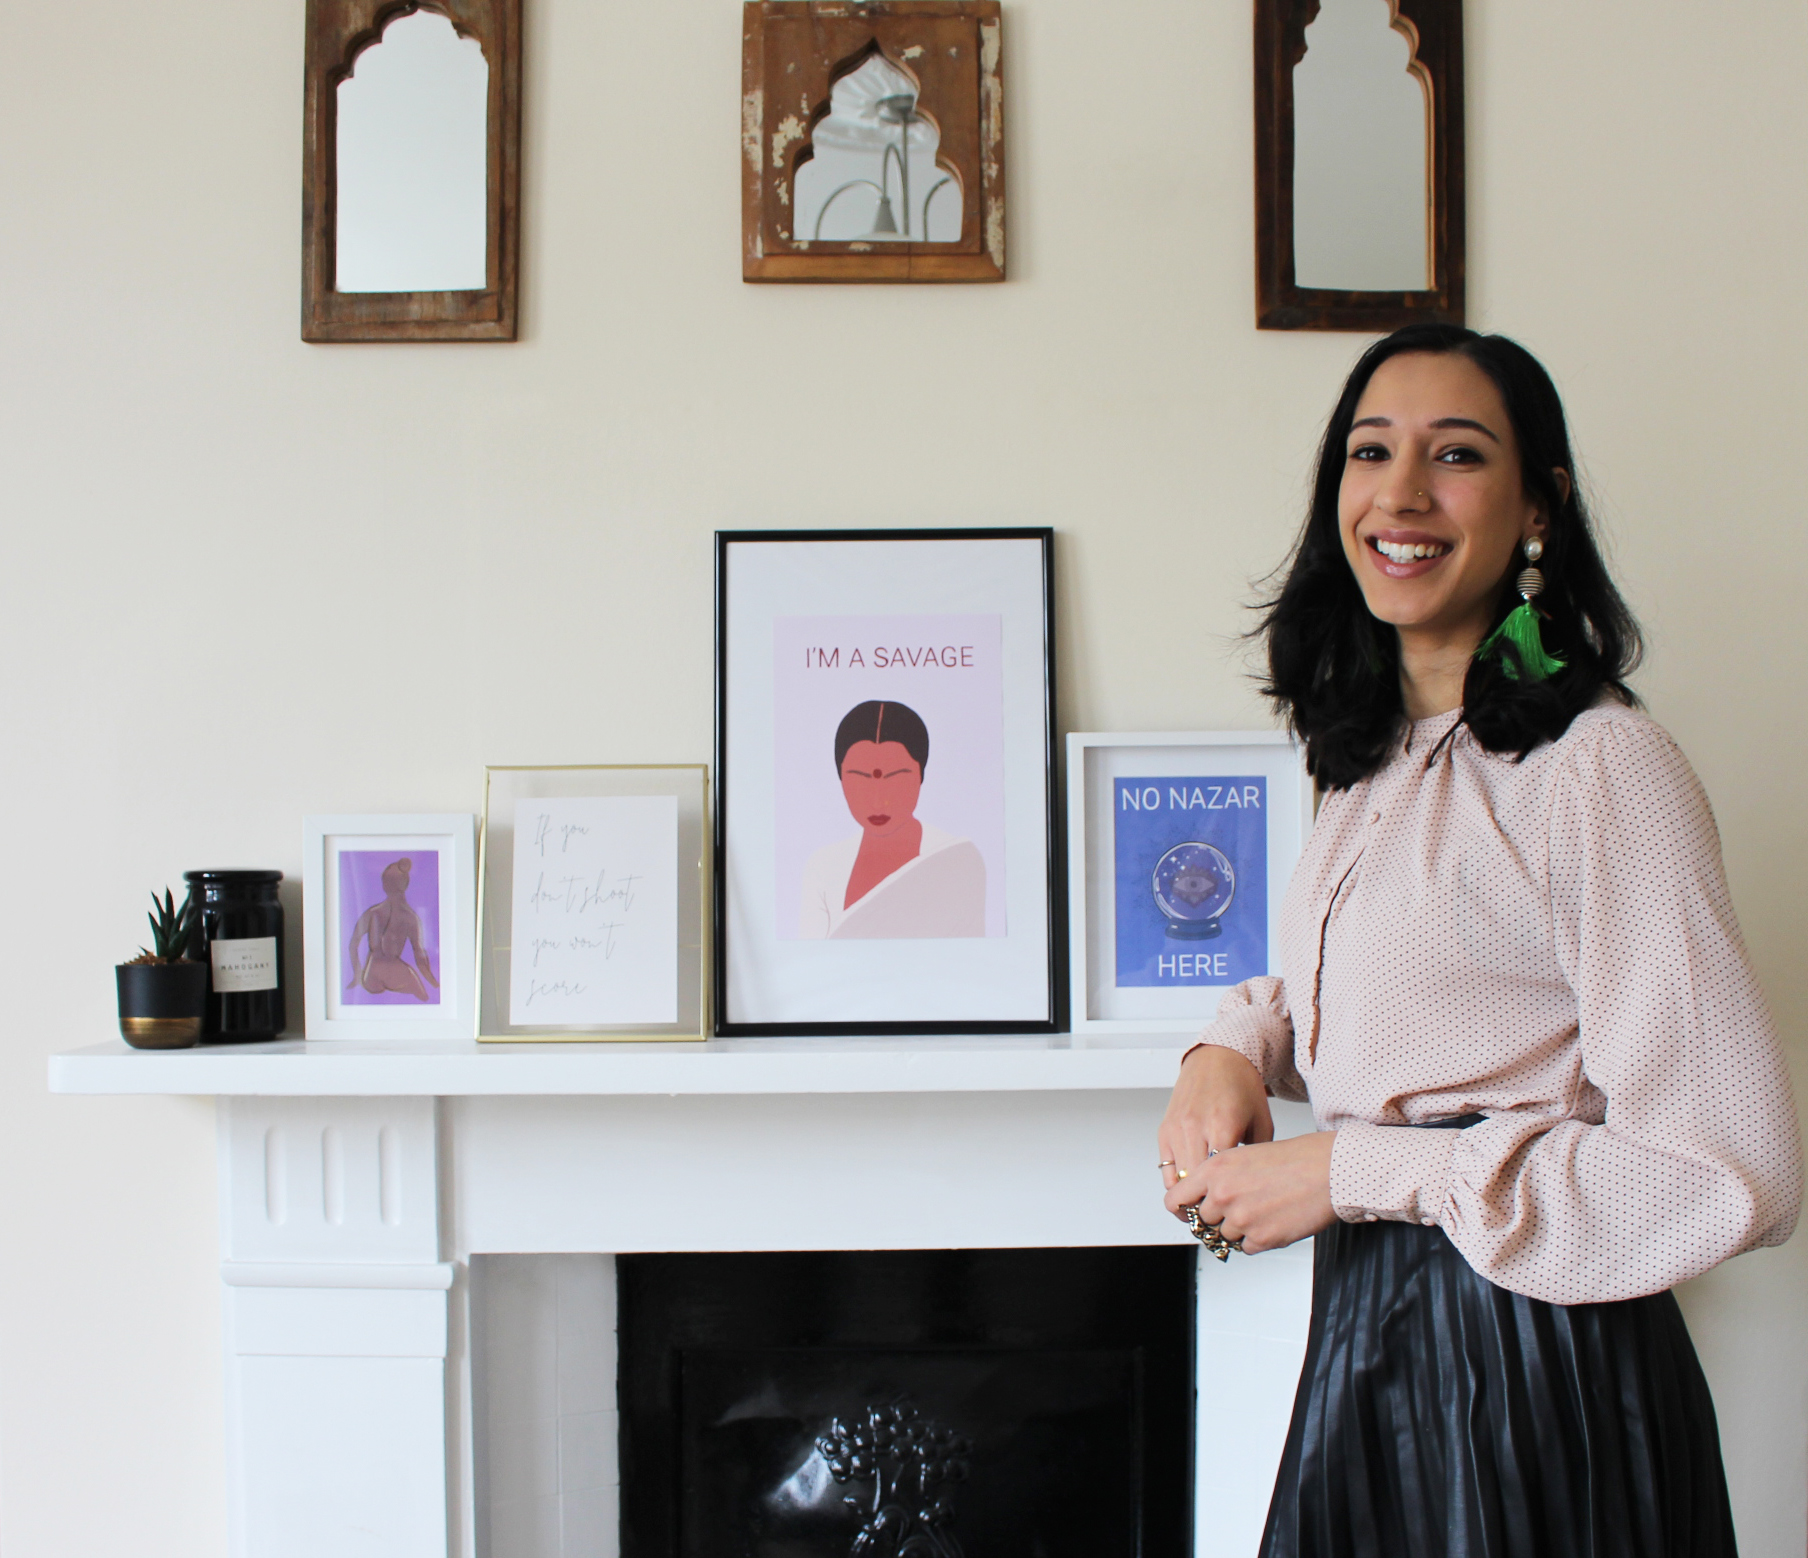 An image promoting Jatinder Creates; the maker is standing next to a selection of her artwork inspired by her South Asian heritage